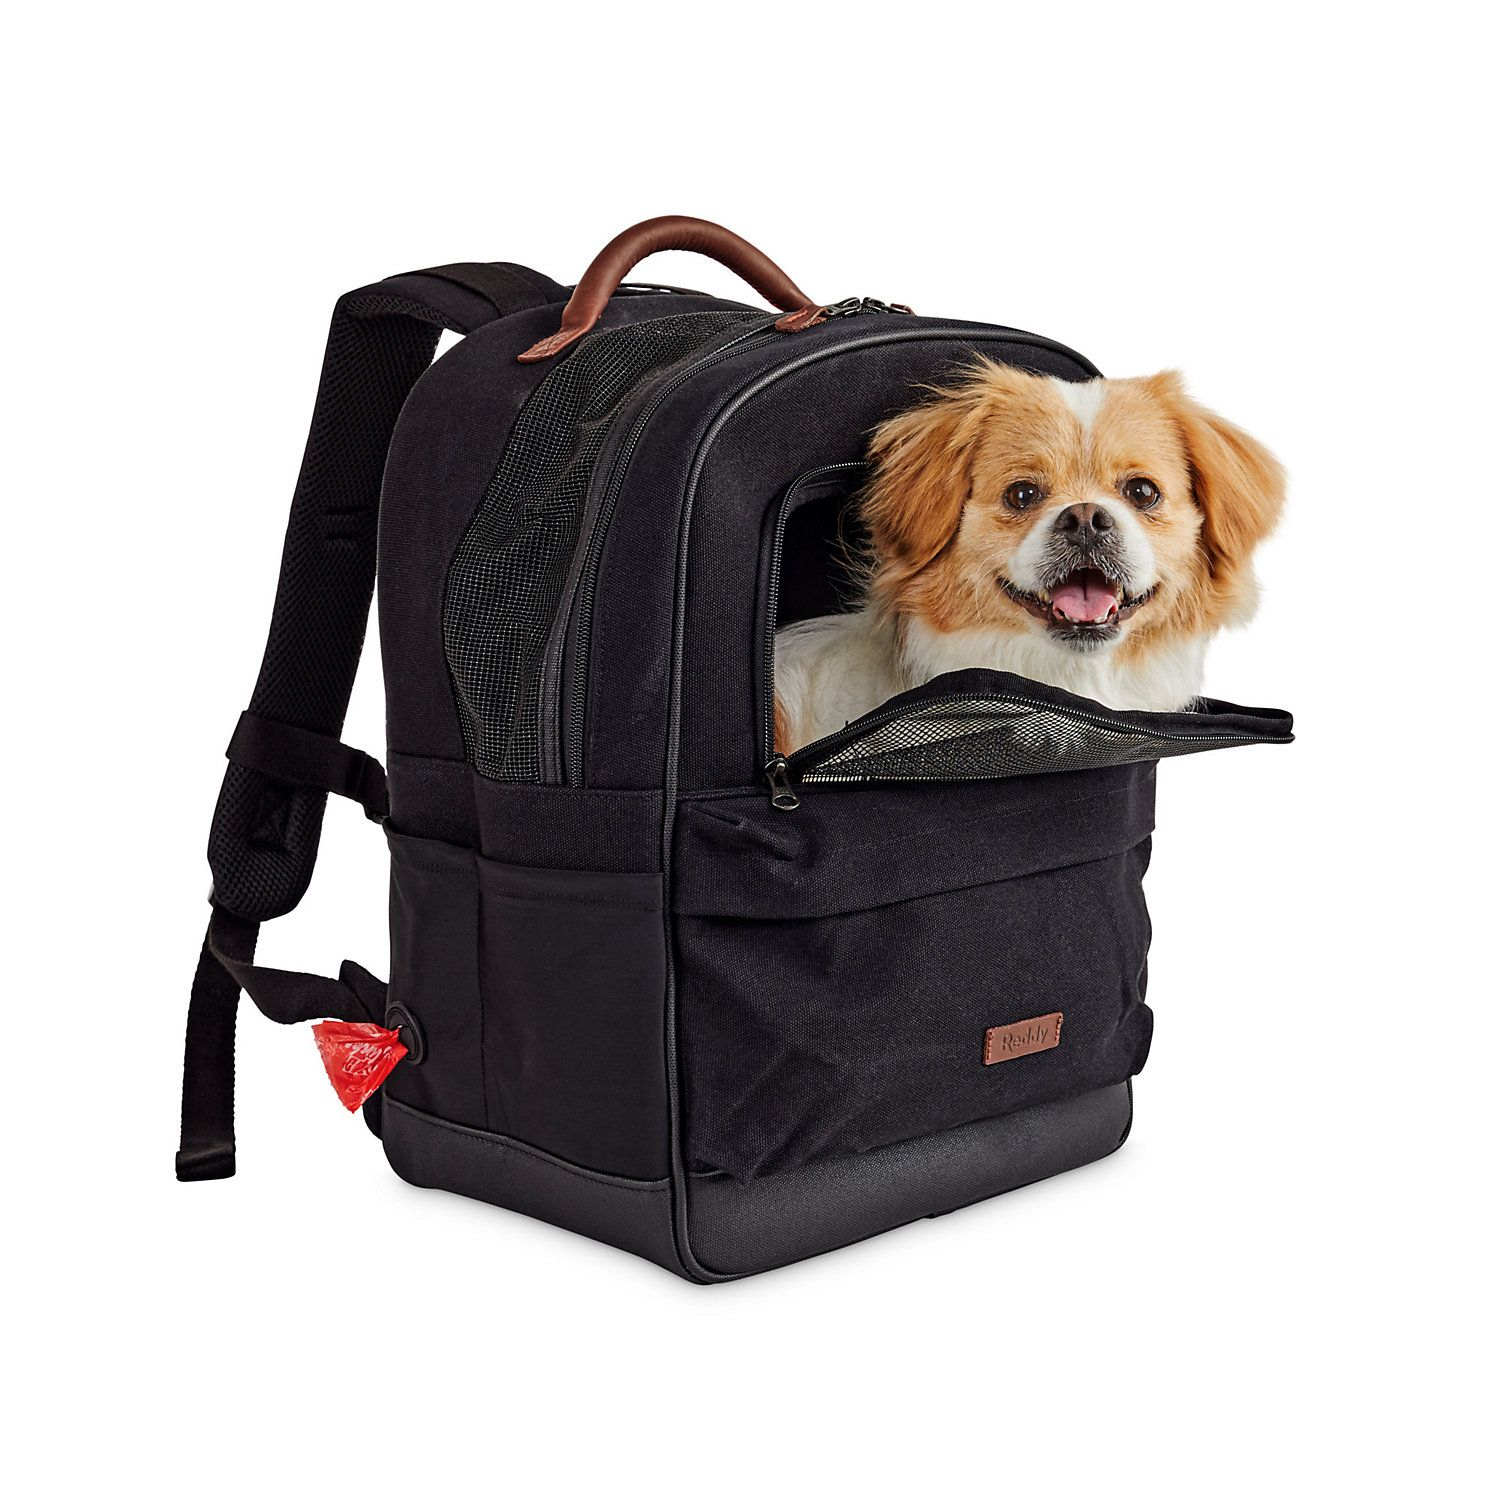 "Reddy Black Cotton Canvas Pet Carrier Backpack, 16"" H x 13"